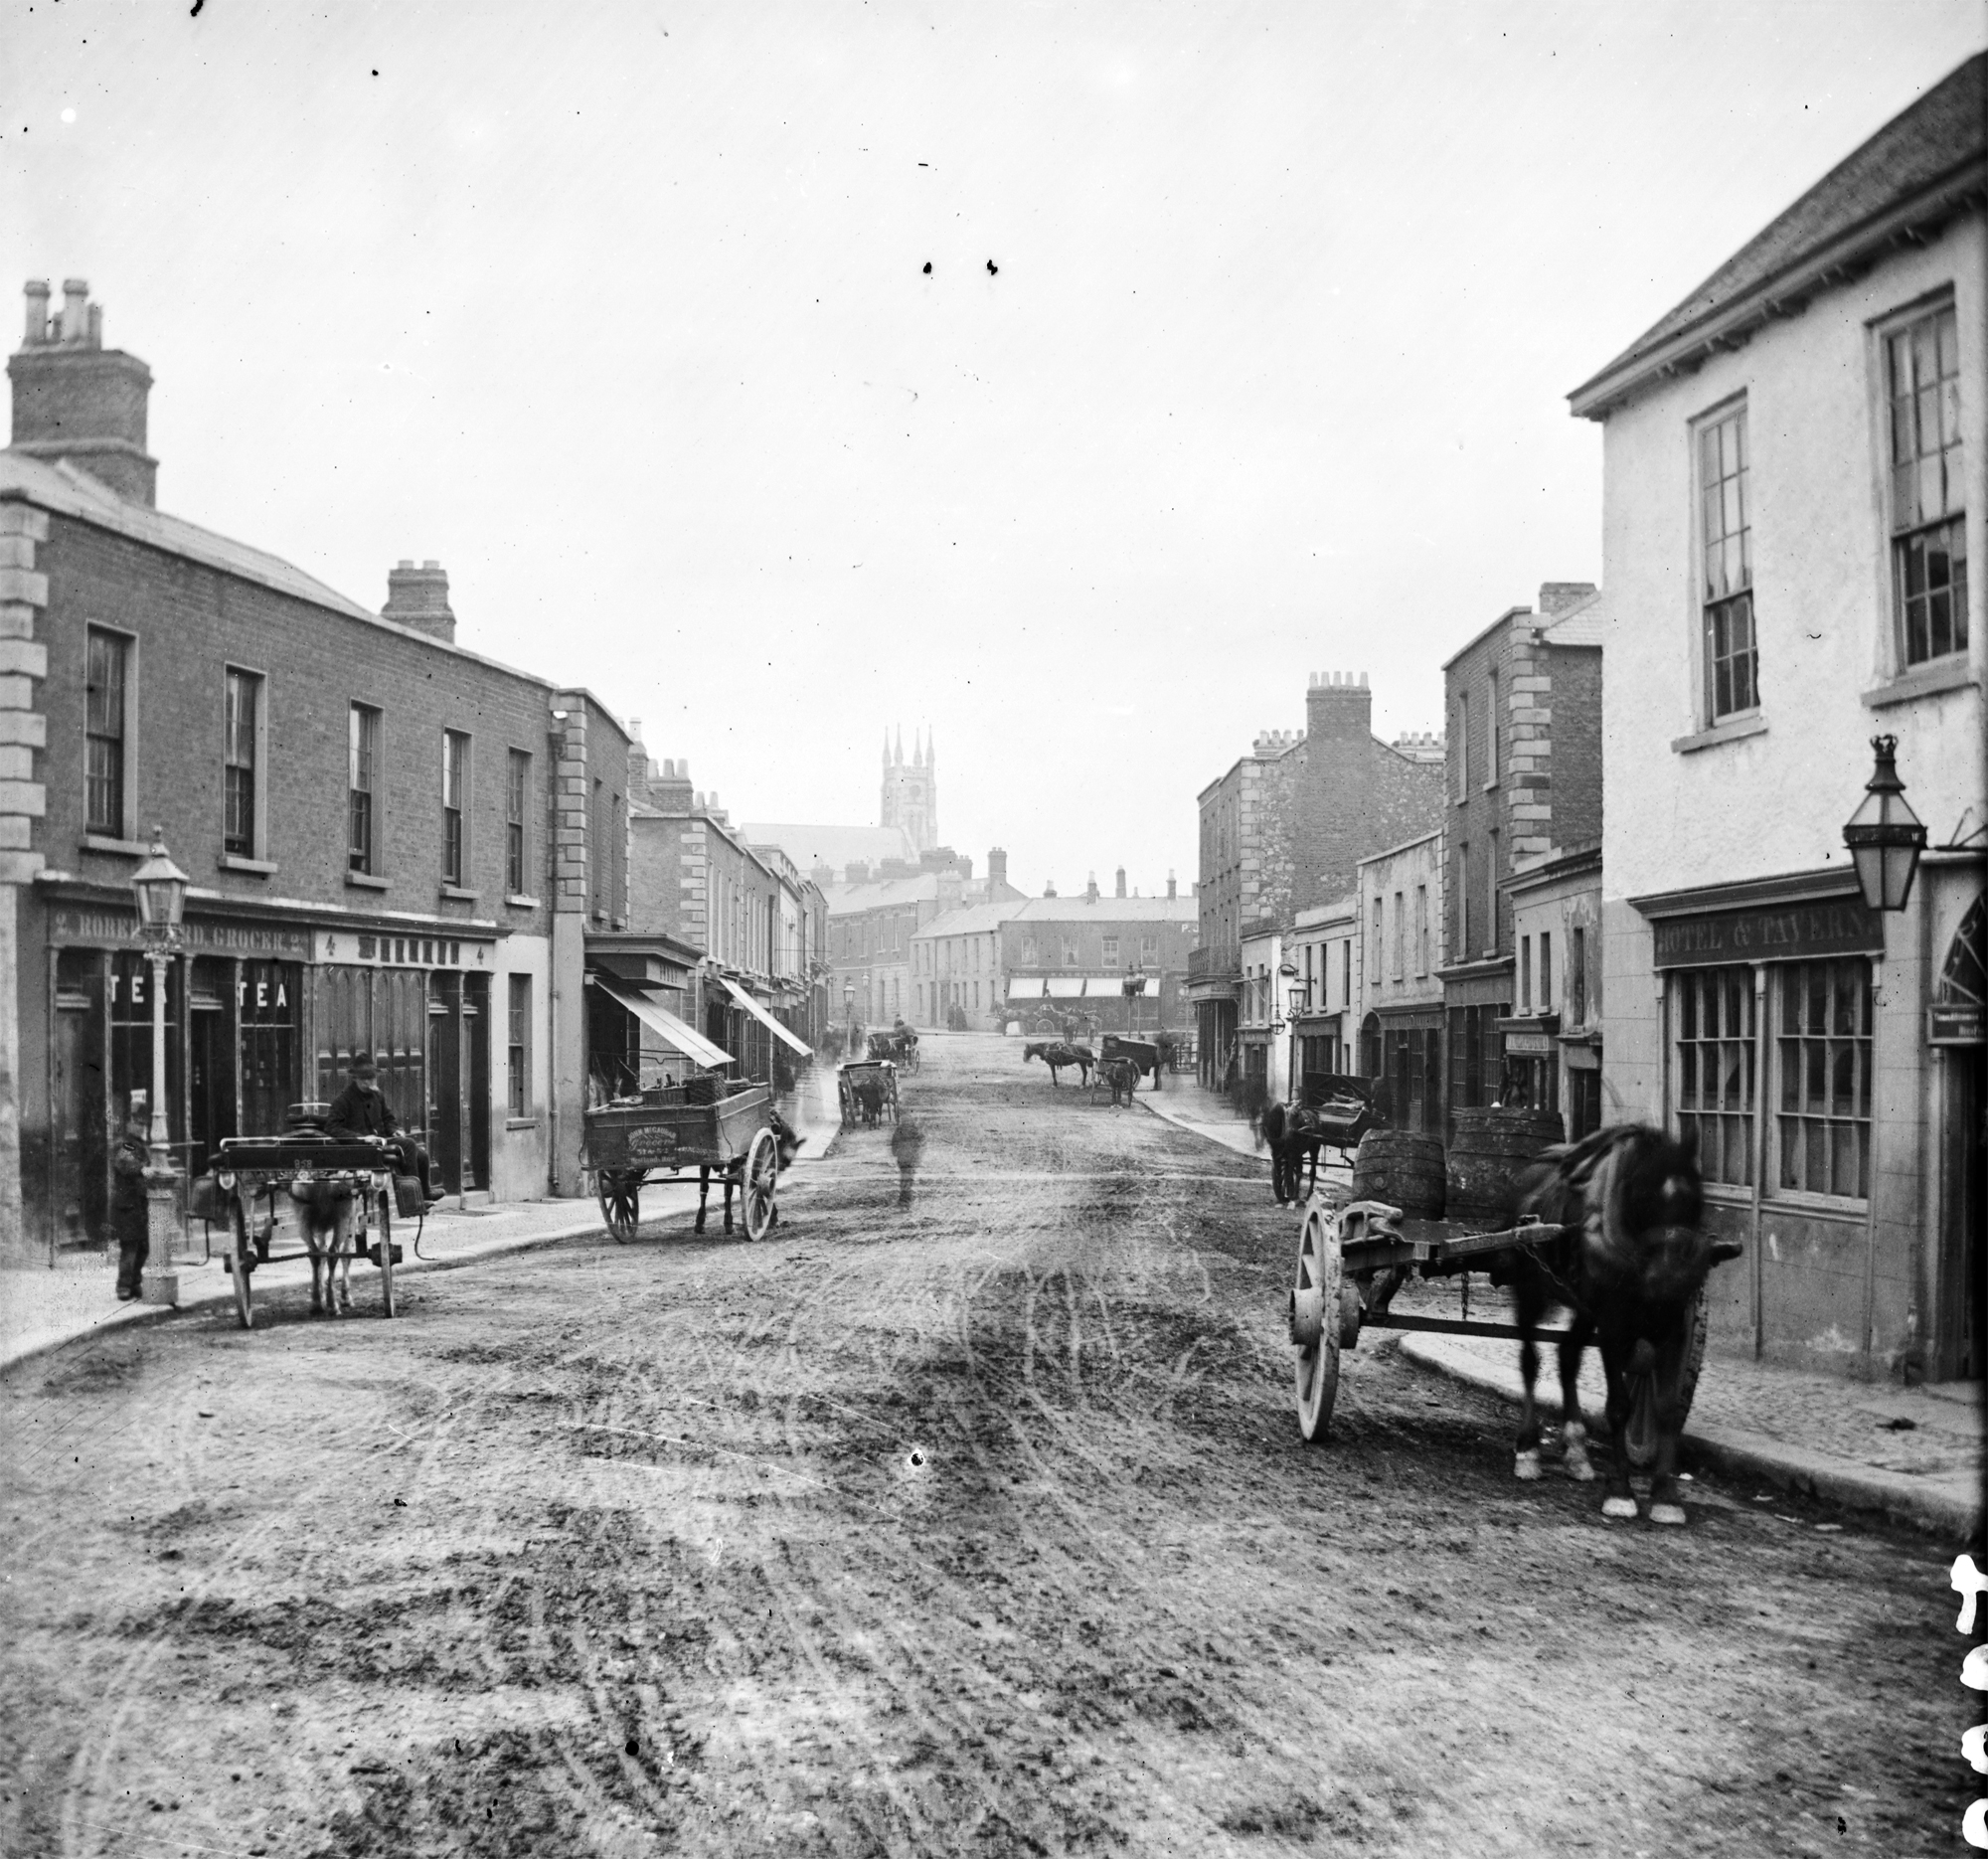 File:Main Street Blackrock, Co Dublin Late 1800s Facing